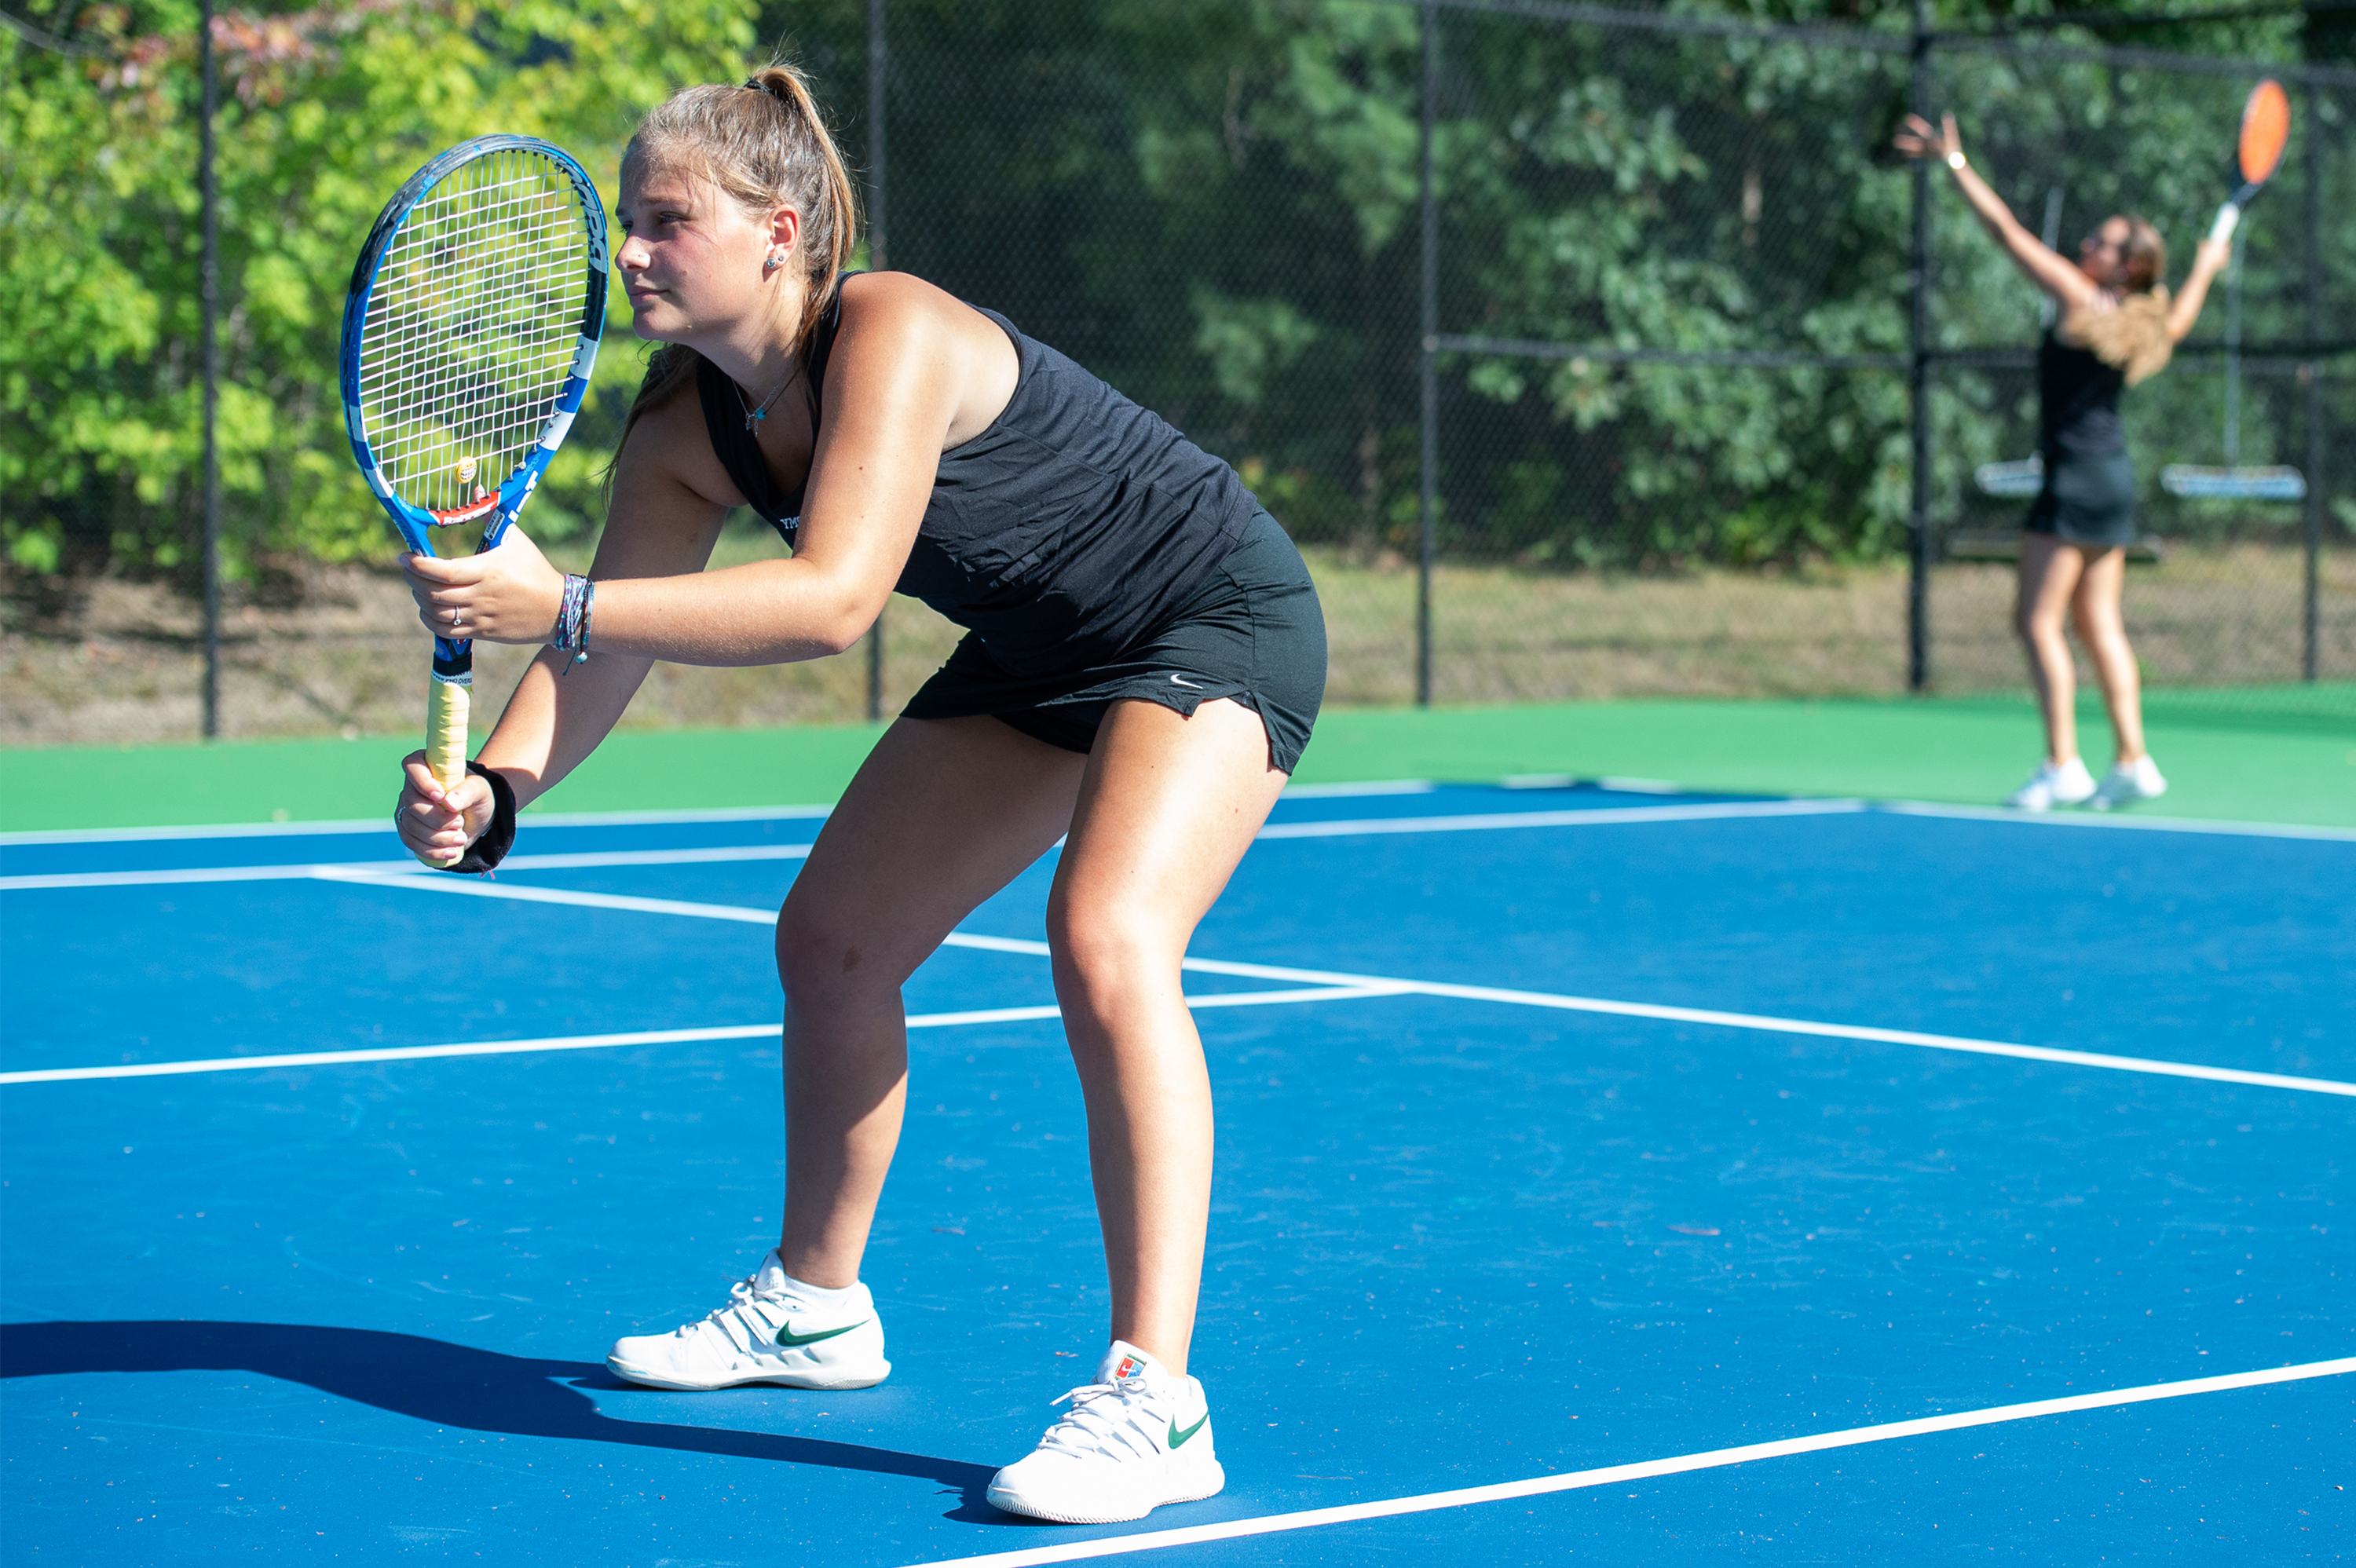 Maggie McCarthy was voted All-LEC First Team Doubles after a strong tennis season.